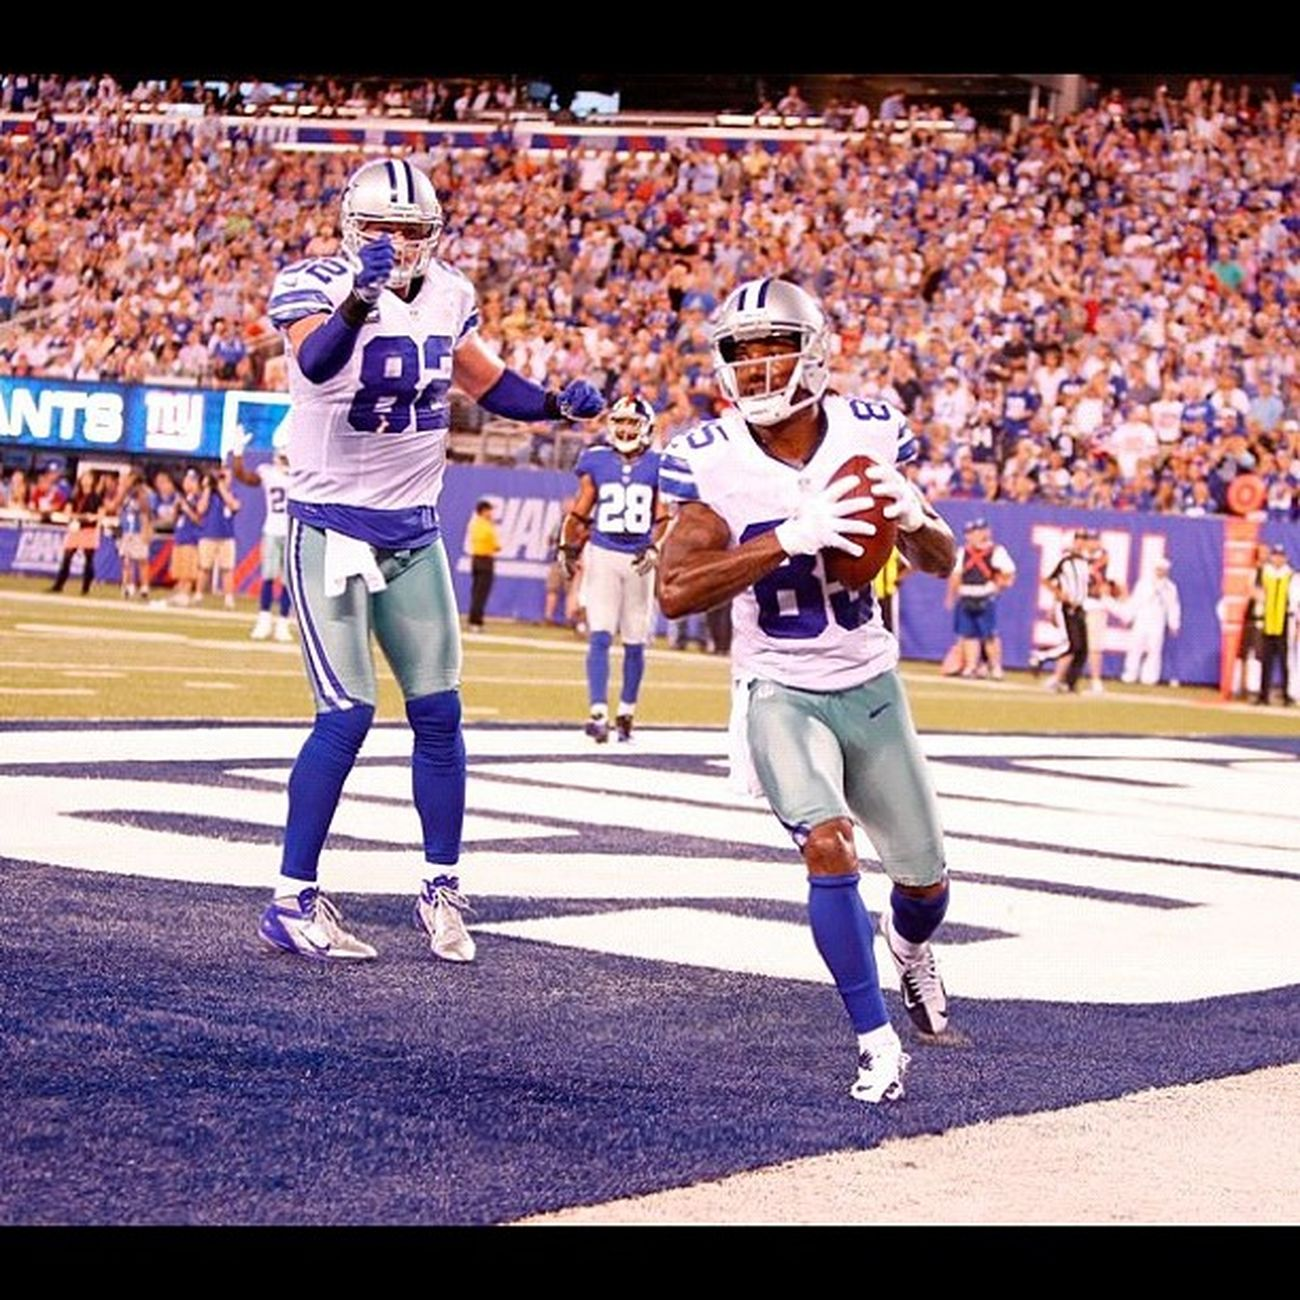 We beat the Superbowl Champs 24 to 17 and started off the season 1-0...HowBoutThemCowboys !!! TeamDallas